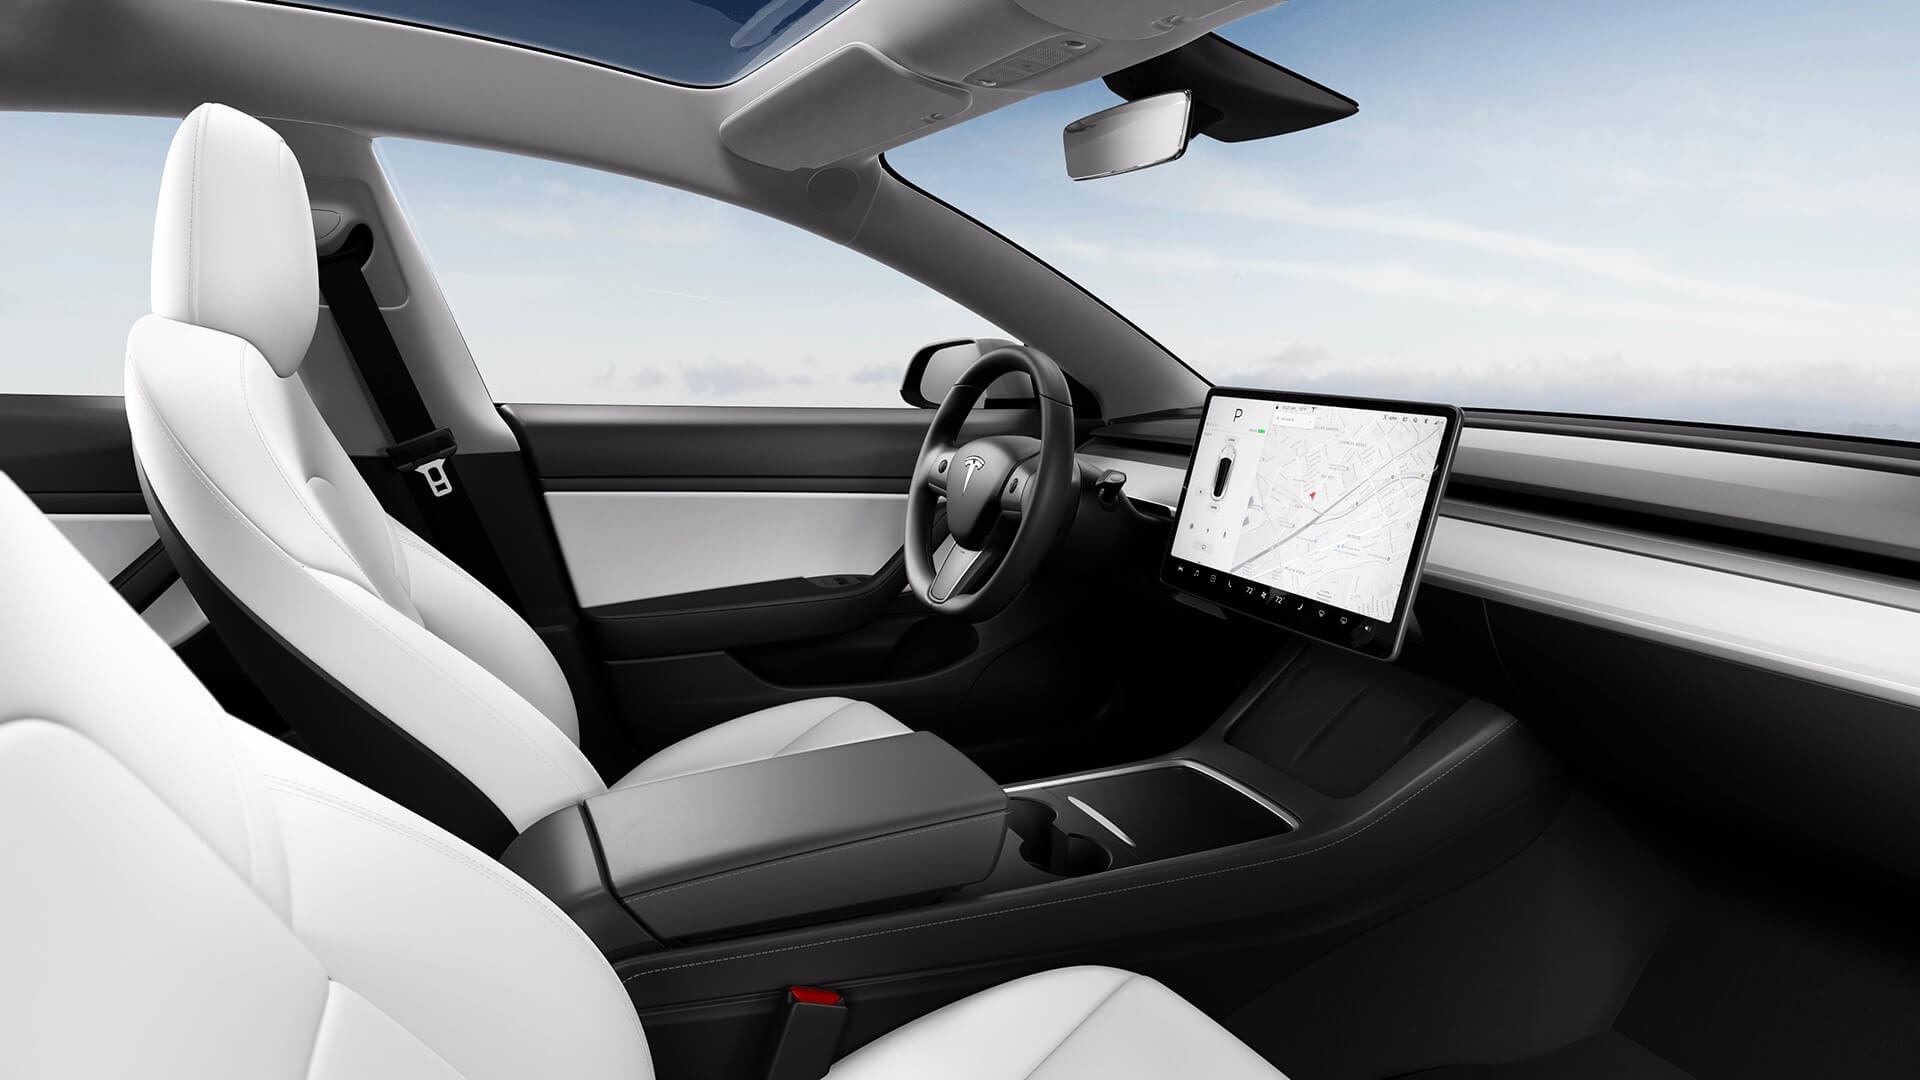 2021 Tesla Model 3 interieur stoelen